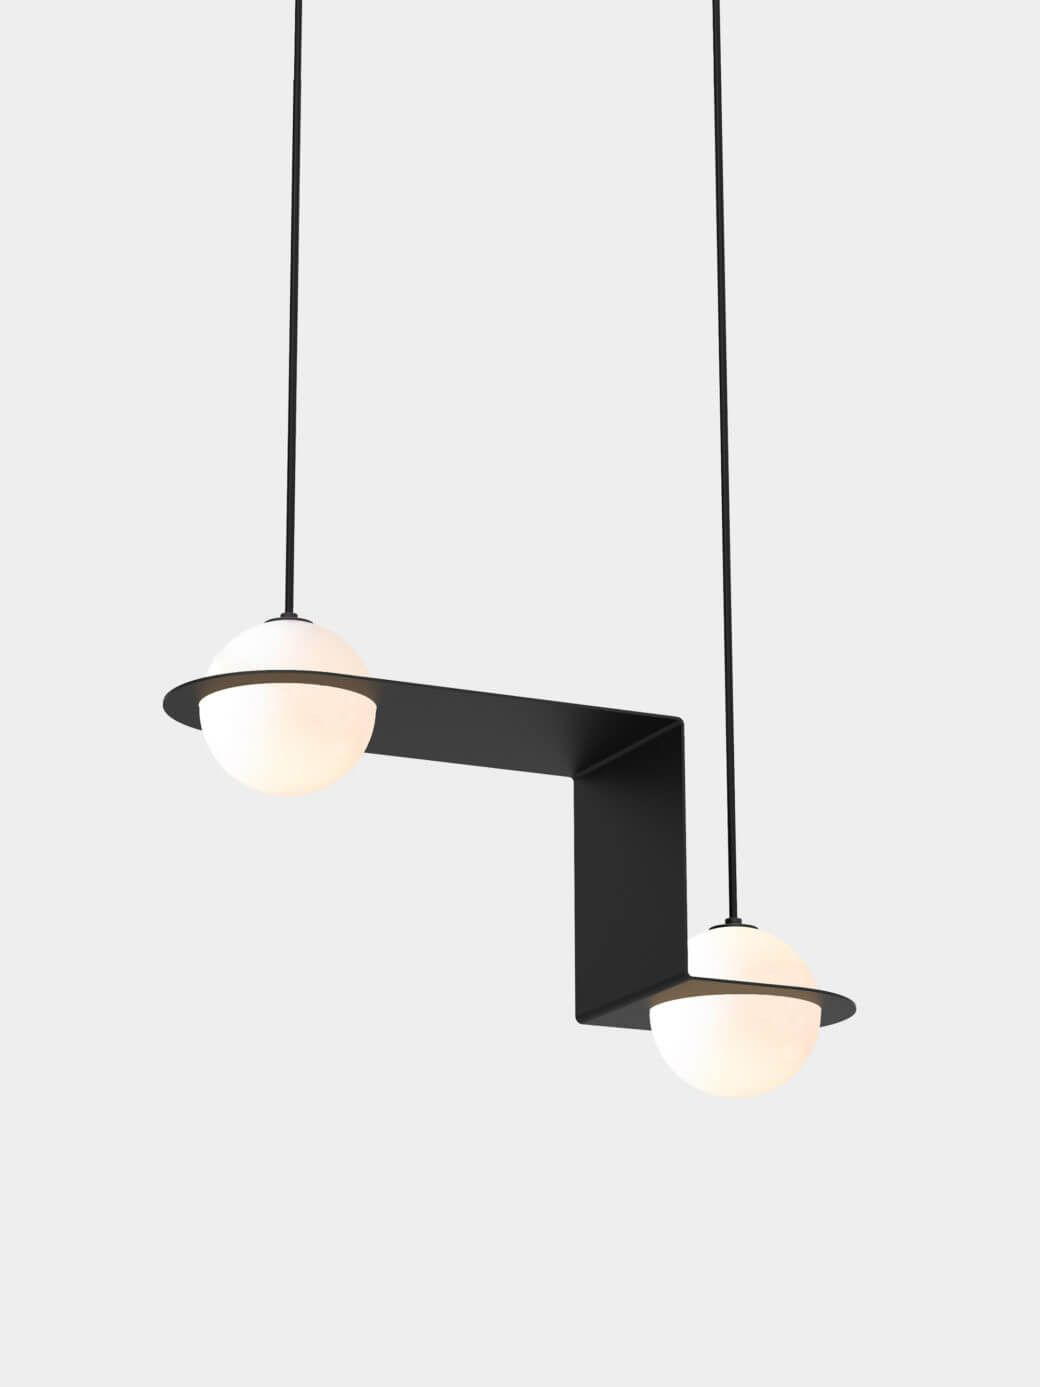 Based in montréal lambert et fils is a collaborative lighting design studio founded by samuel lambert in 2010